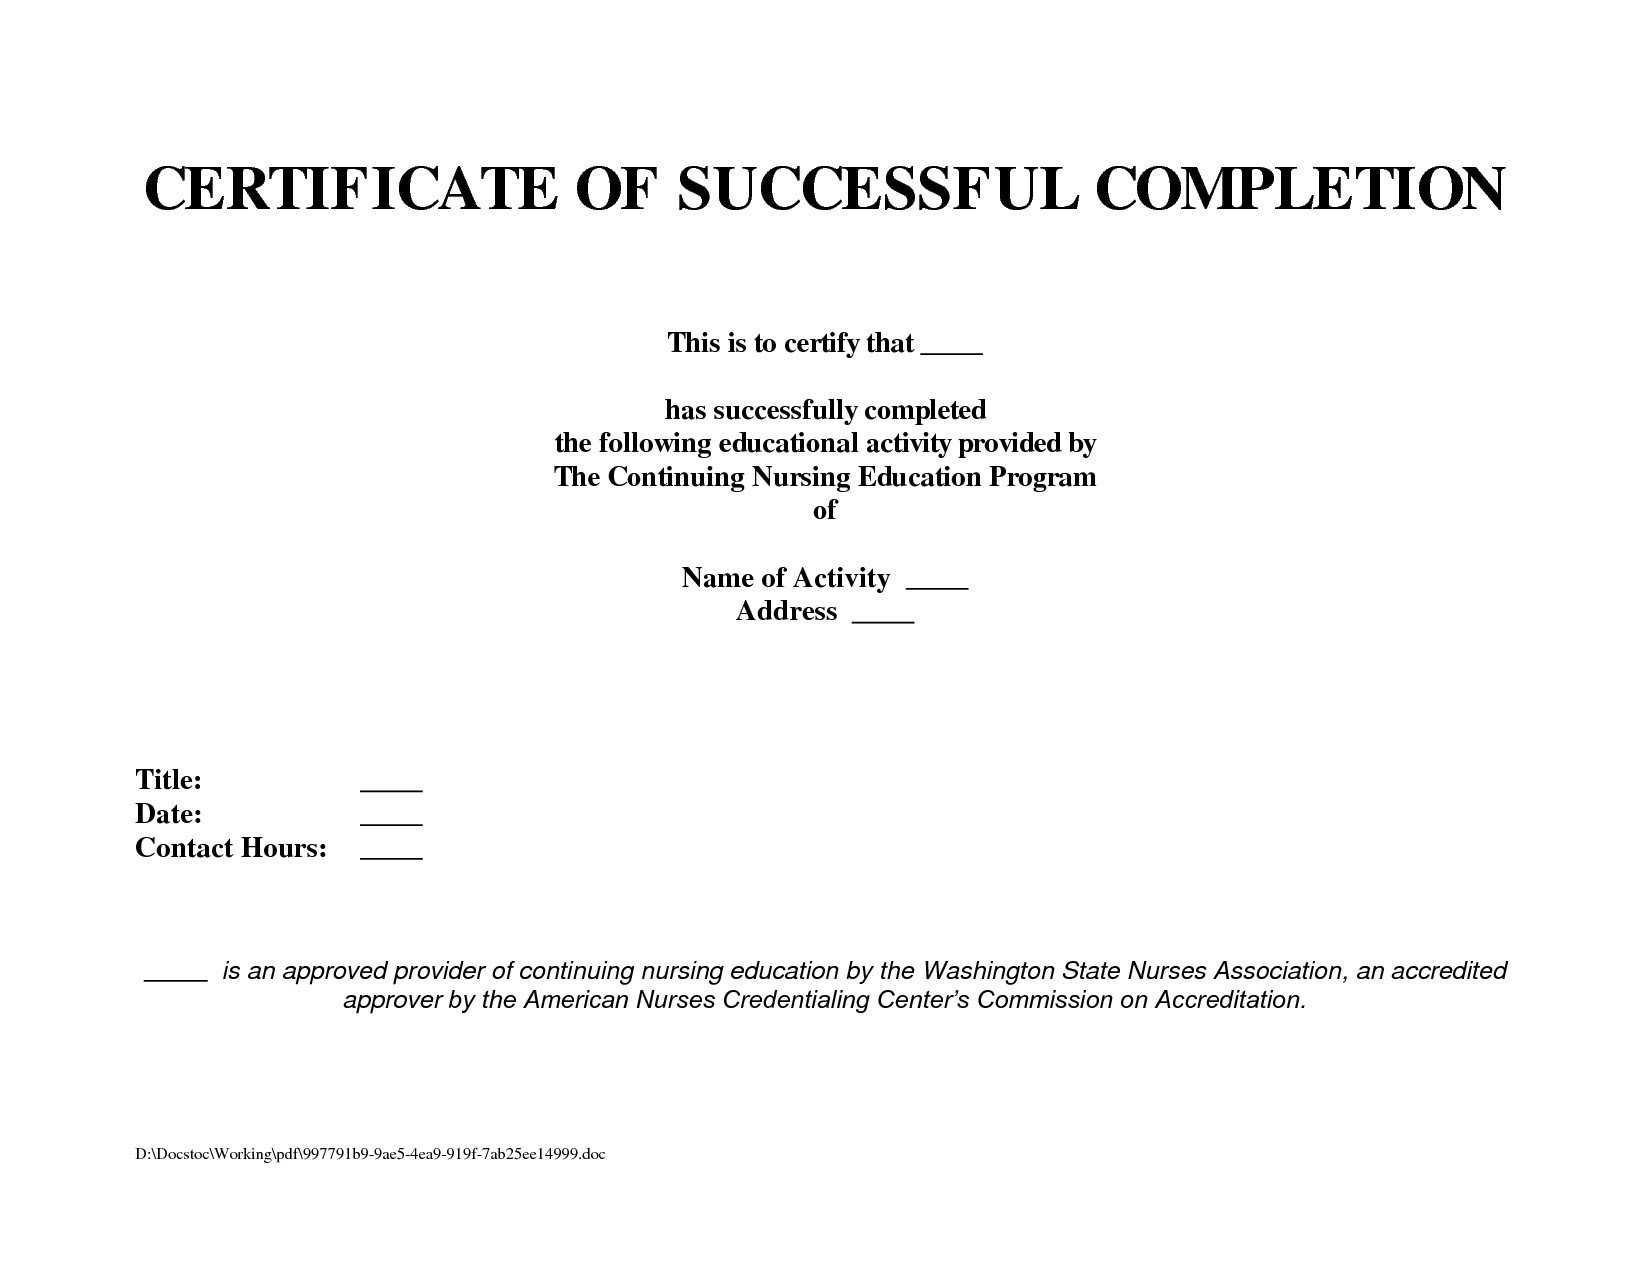 10 Template For A Certificate Of Completion | Business Letter With Certificate Template For Project Completion